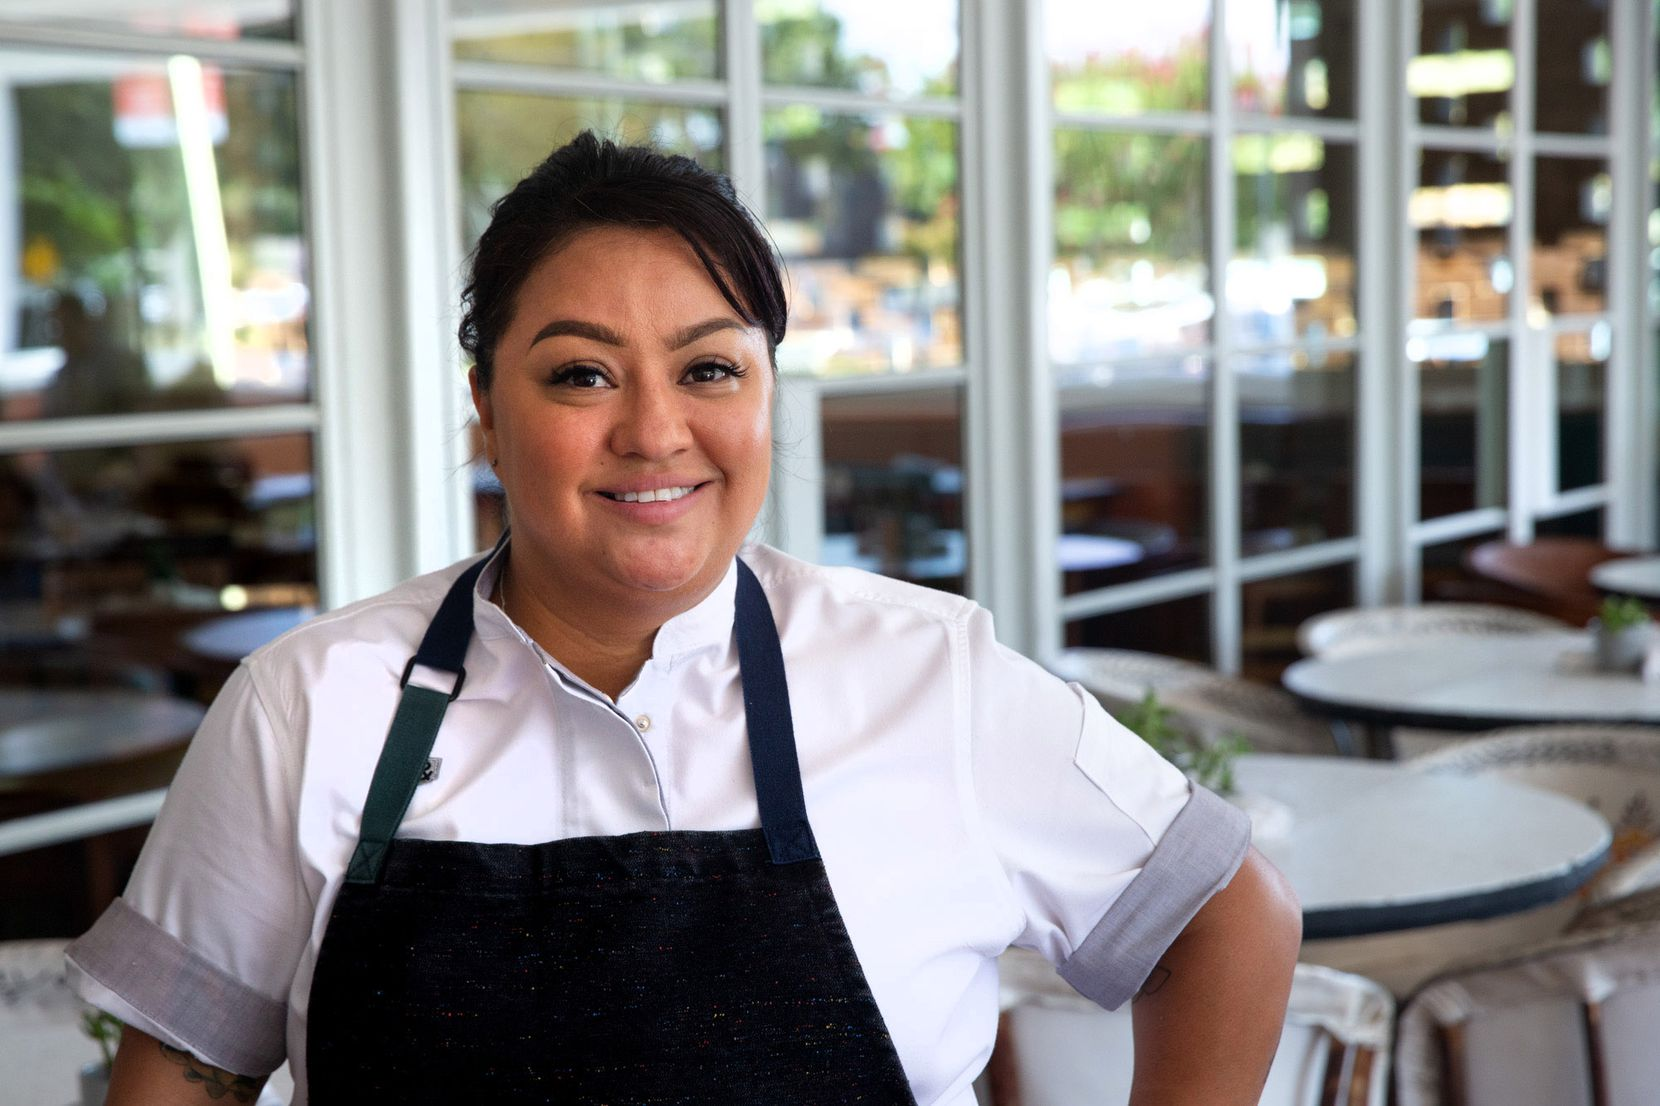 Anastacia Quiñones-Pittman is the executive chef at José restaurant in Dallas.